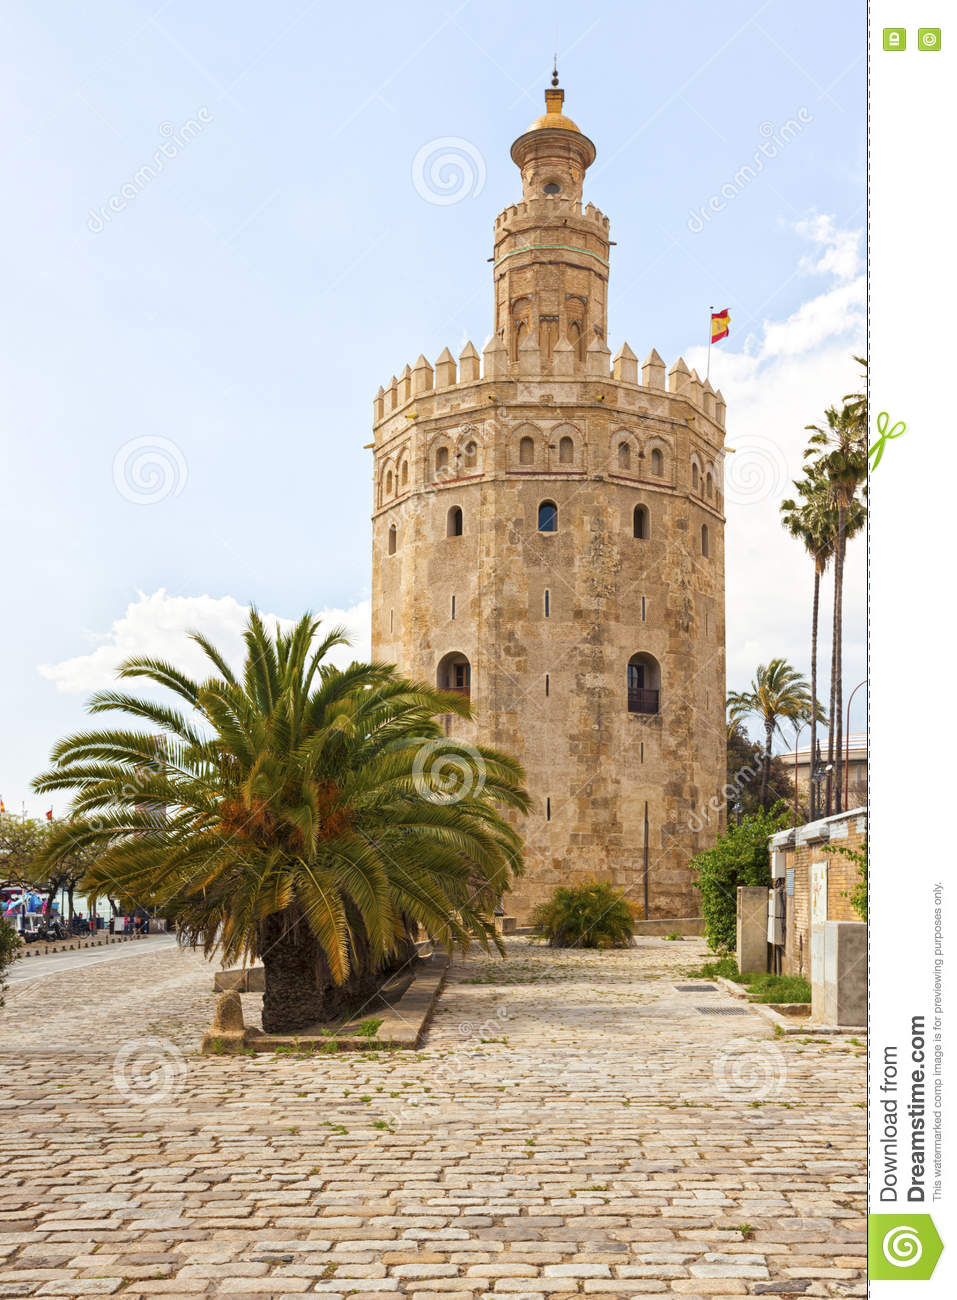 Torre del Oro, ancient lighthouse at Sevilla